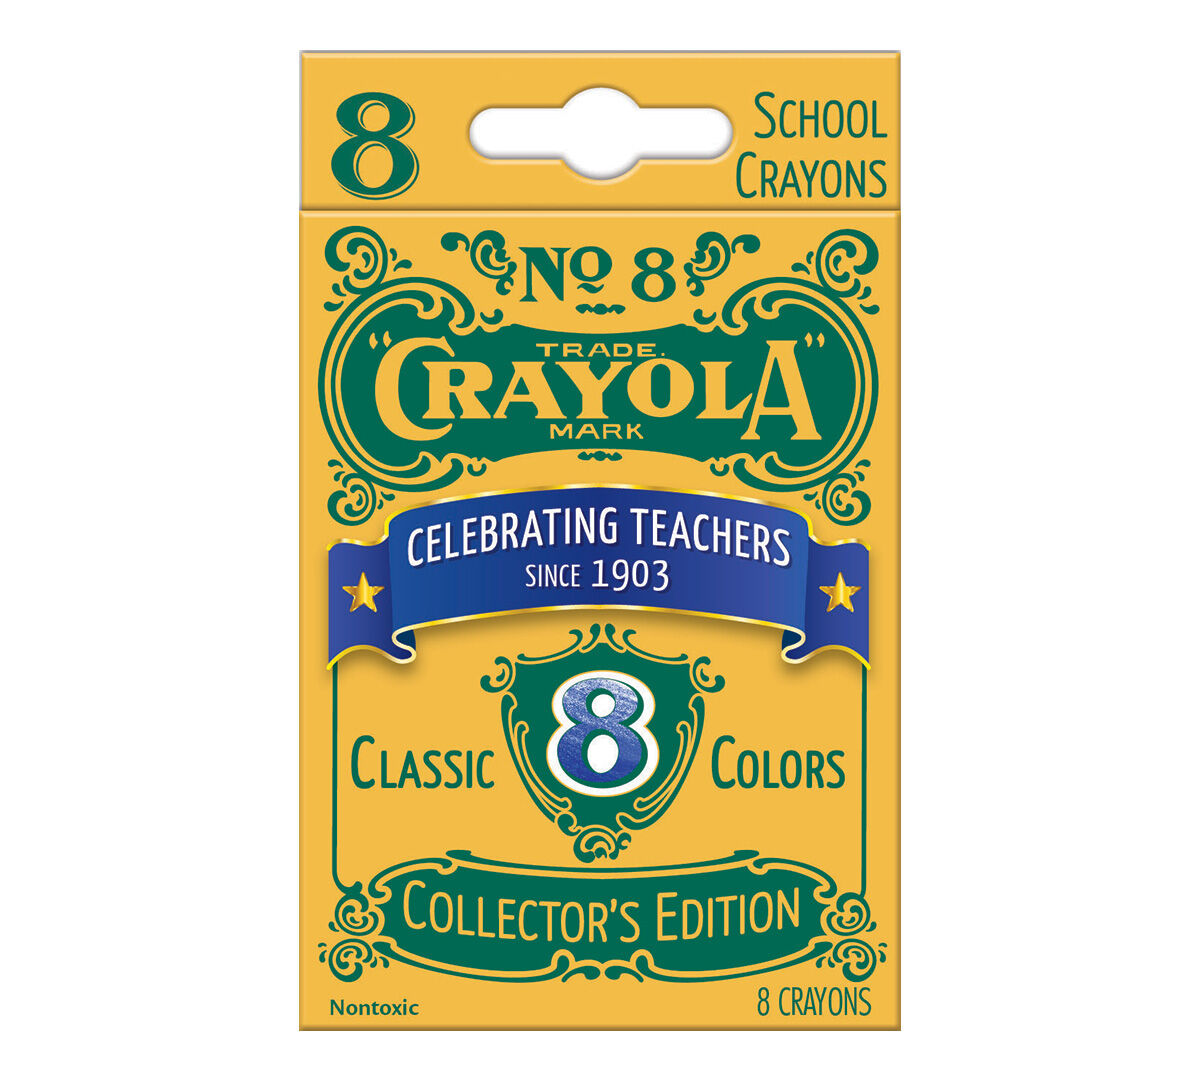 Limited Edition Crayola Crayons with Vintage Packaging, 8ct